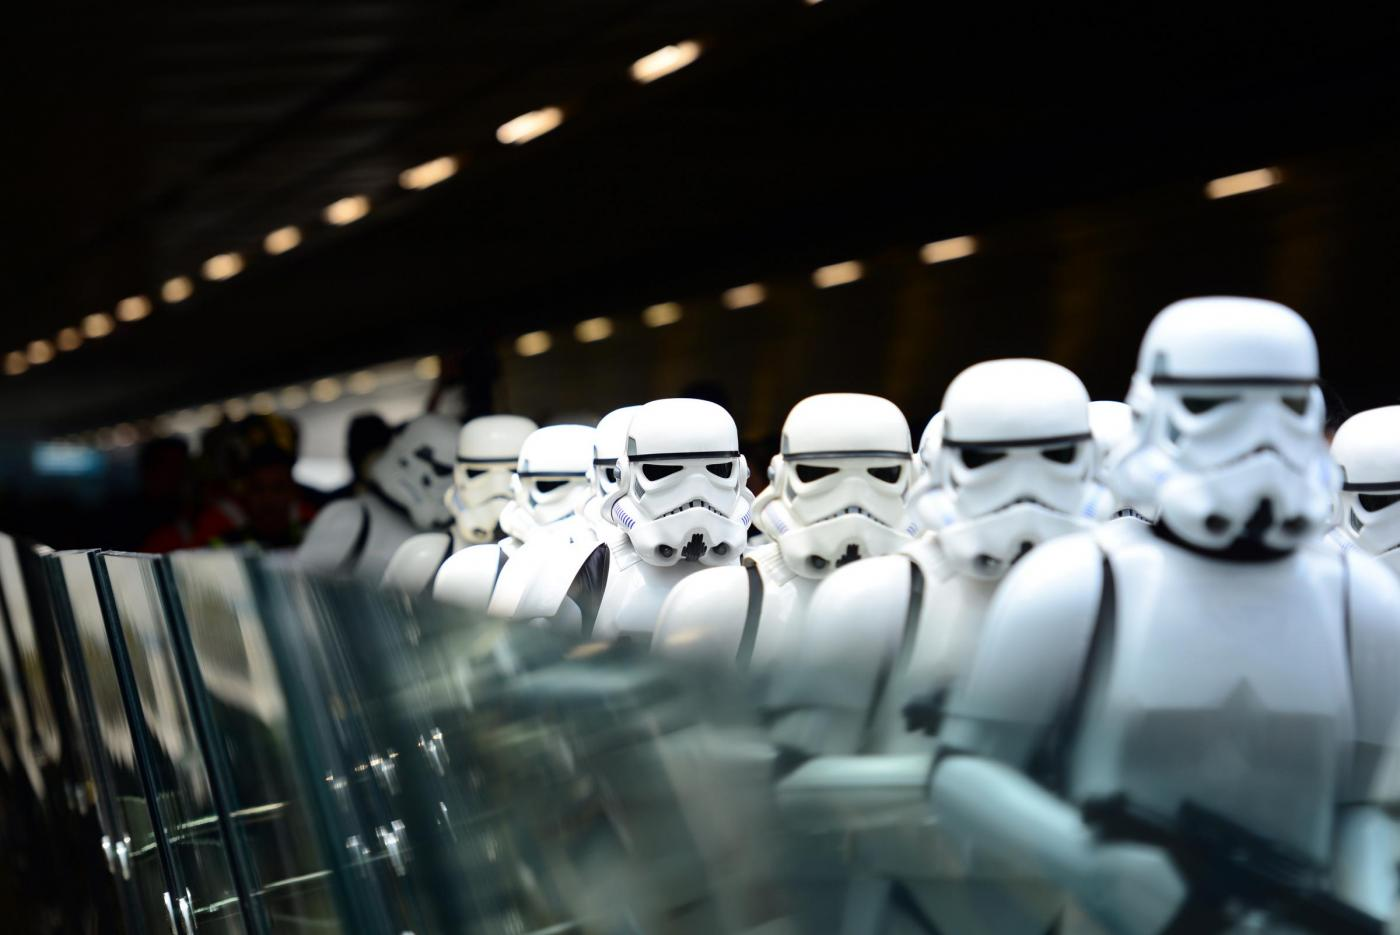 Singapore, Star Wars tour al Changi Airport